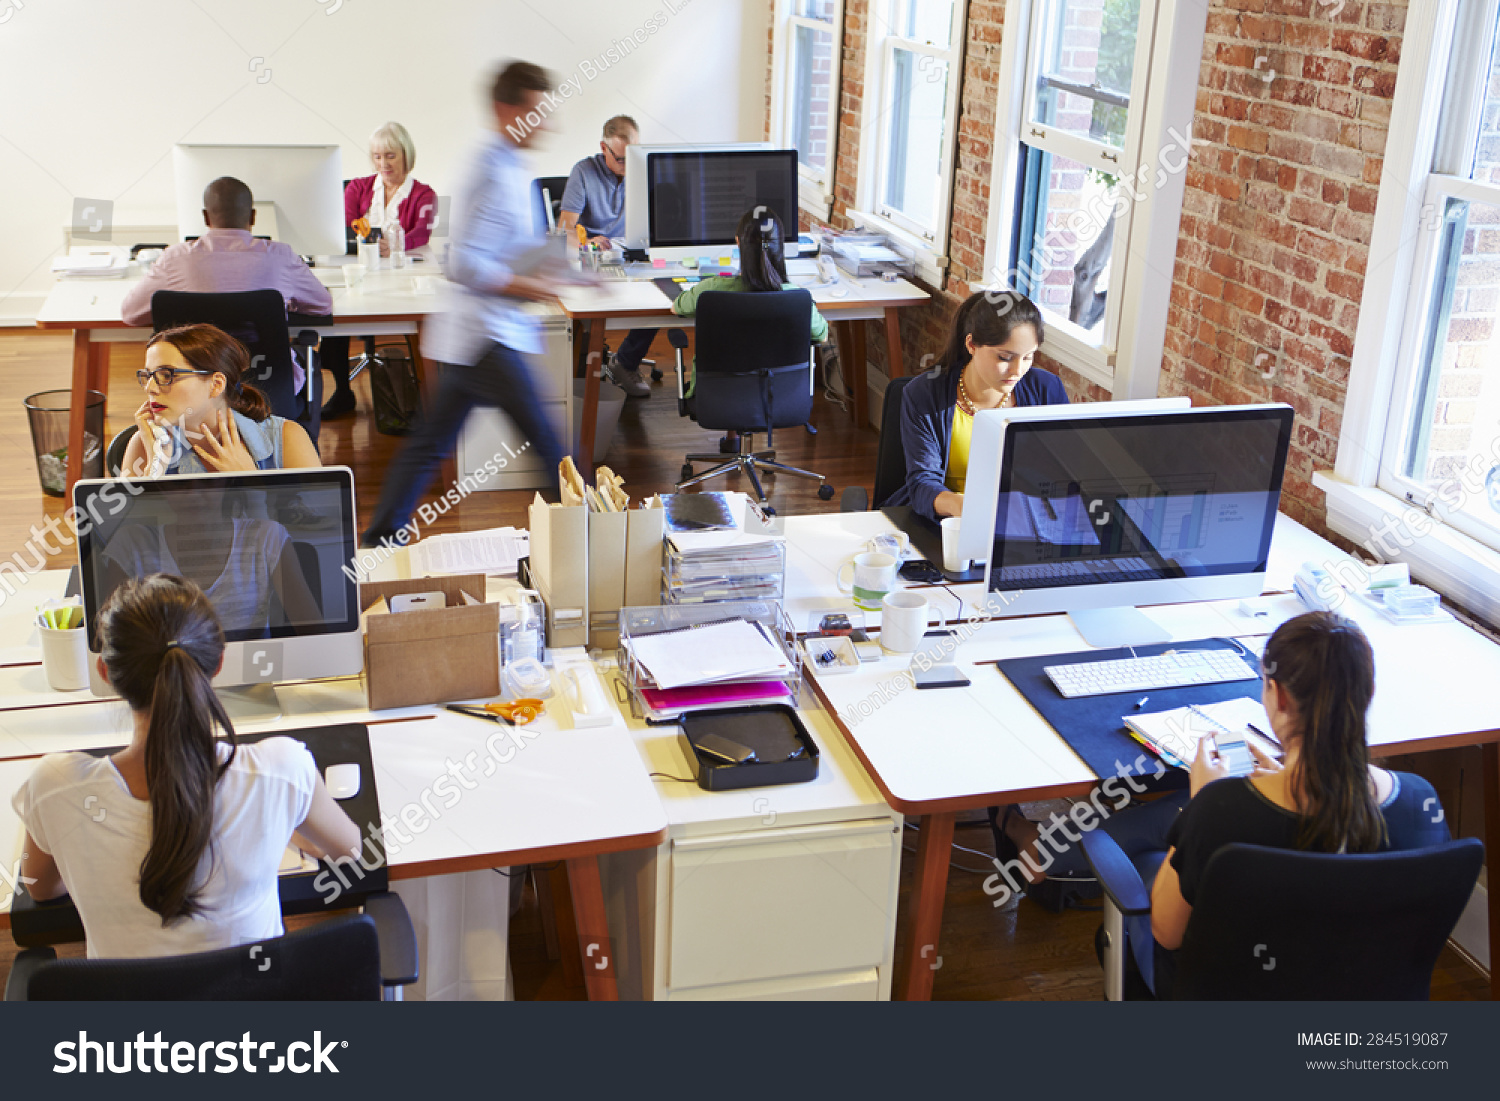 Wide Angle View Of Busy Design Office With Workers At Desks #284519087